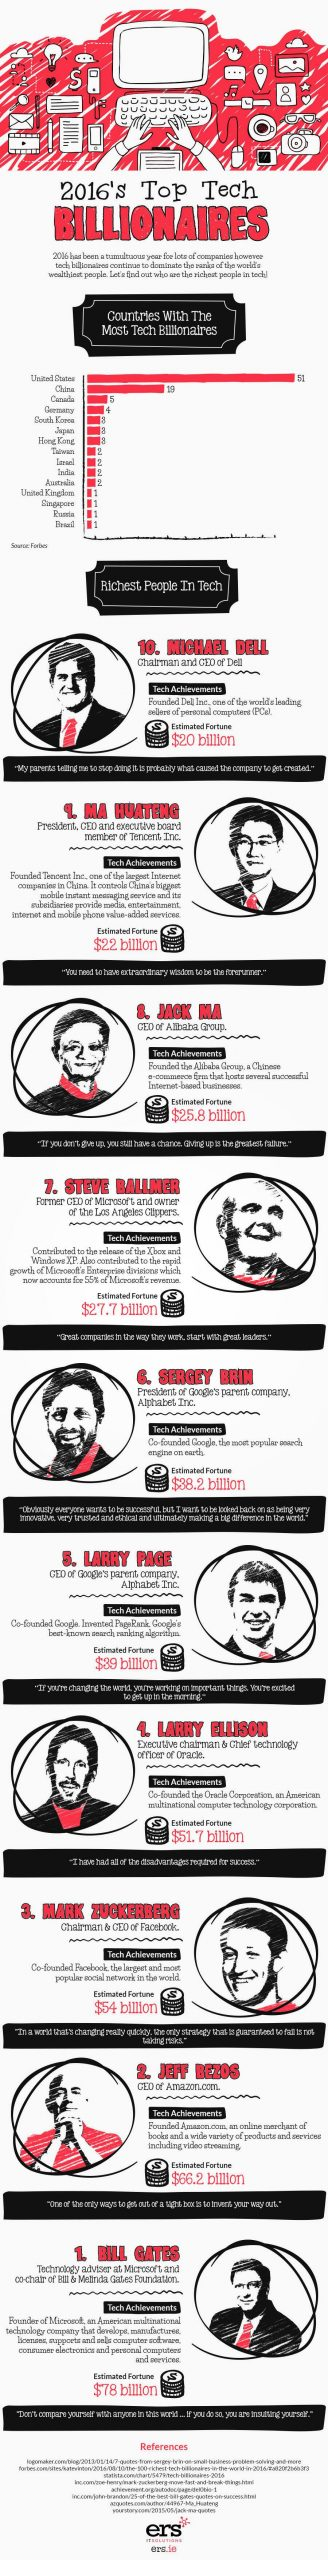 Top 10 Tech Billionaires That Have Completely Changed The World Infographic